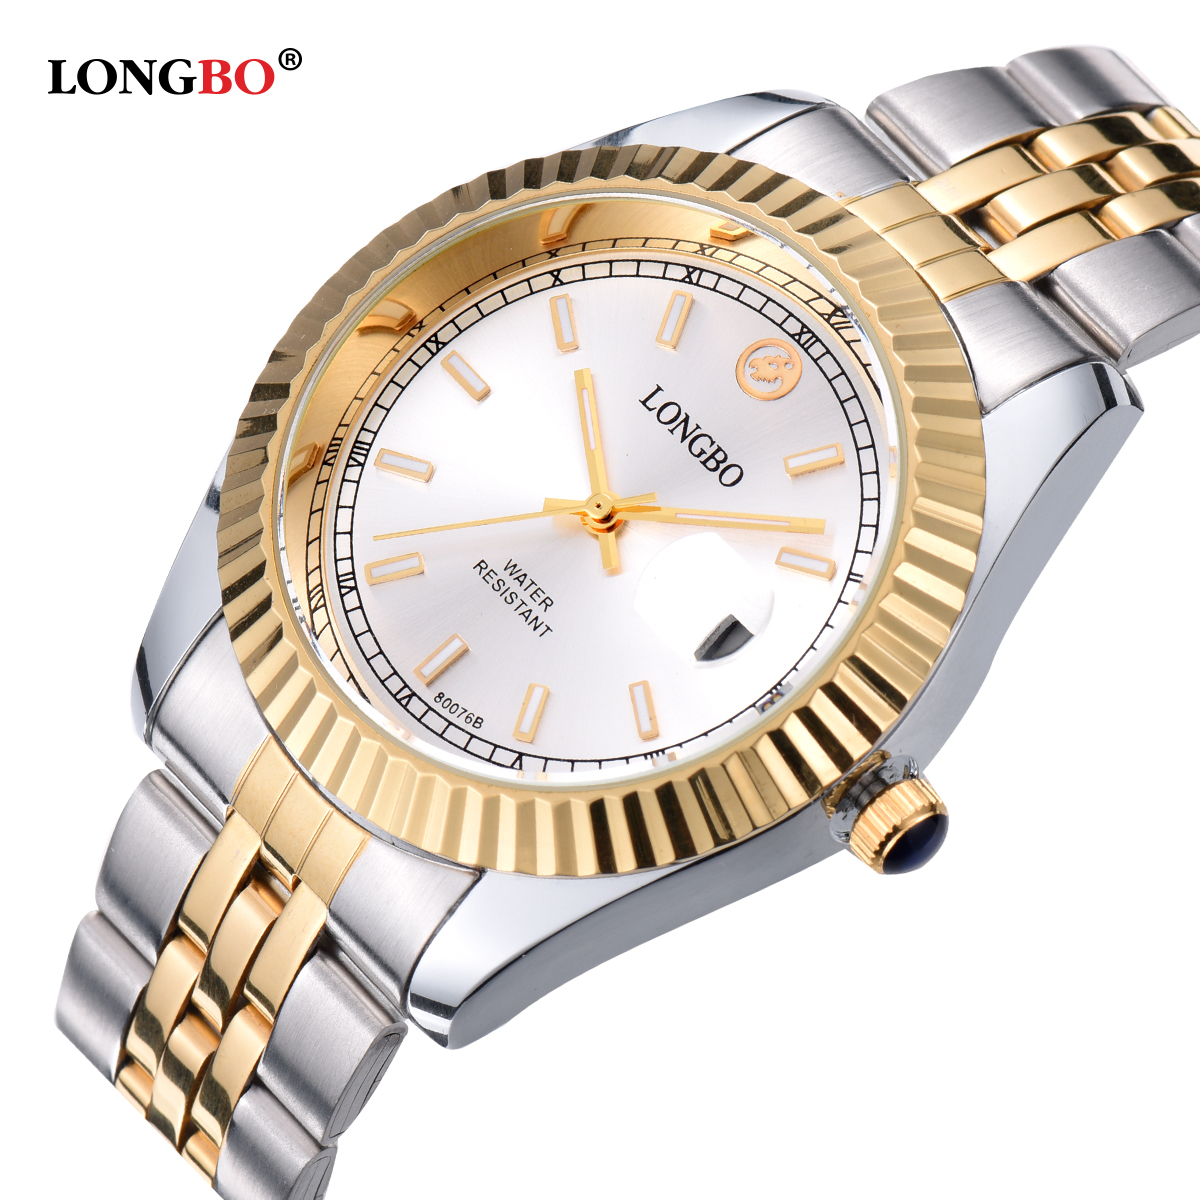 LONGBO Luxury Lovers Couple Watches Men Date Day Waterproof Women Gold Stainless Steel Quartz Wristwatch Montre Homme 80076<br><br>Aliexpress